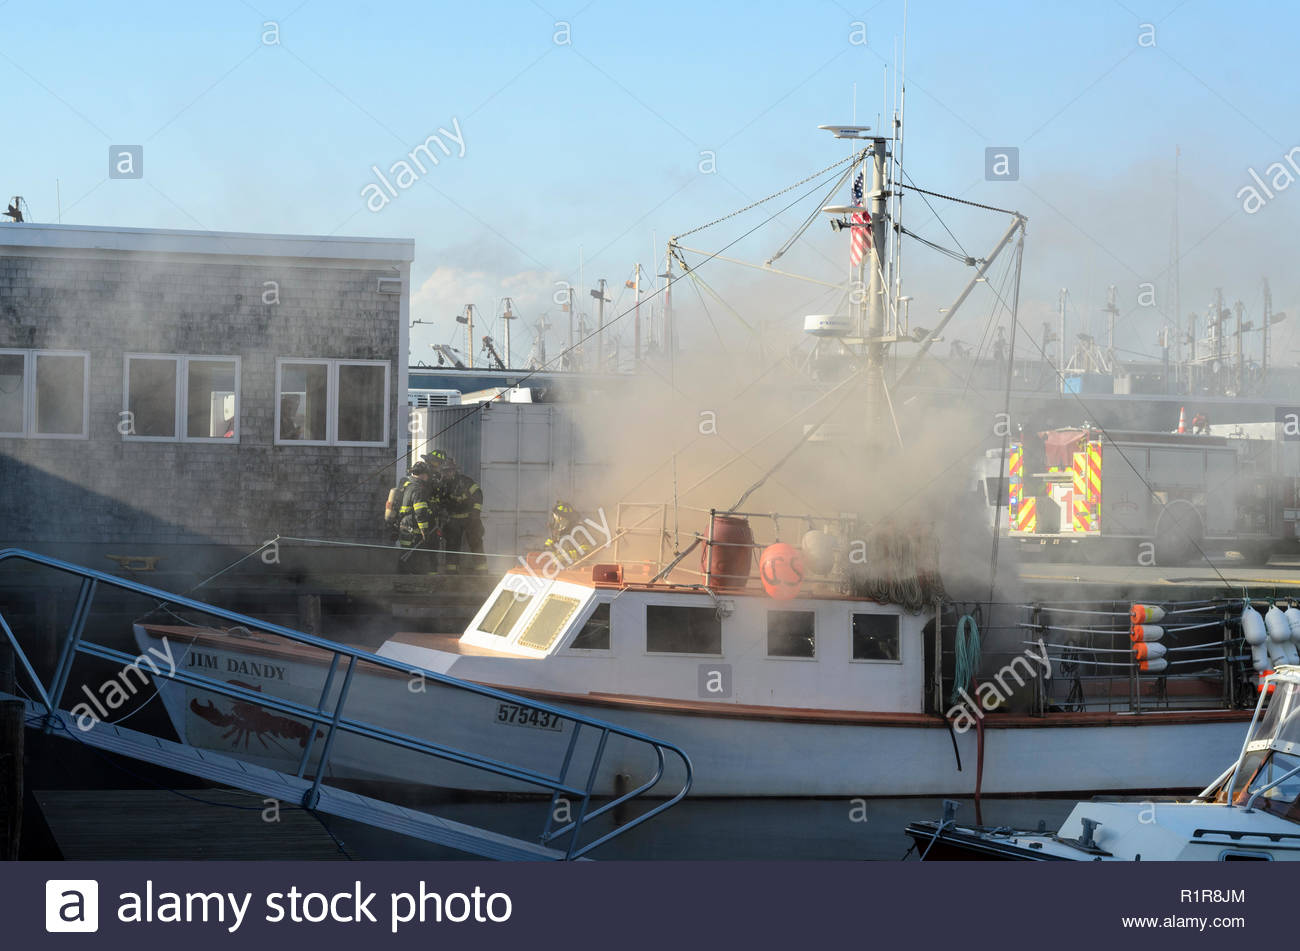 Boat Fire Wharf Stock Photos & Boat Fire Wharf Stock Images